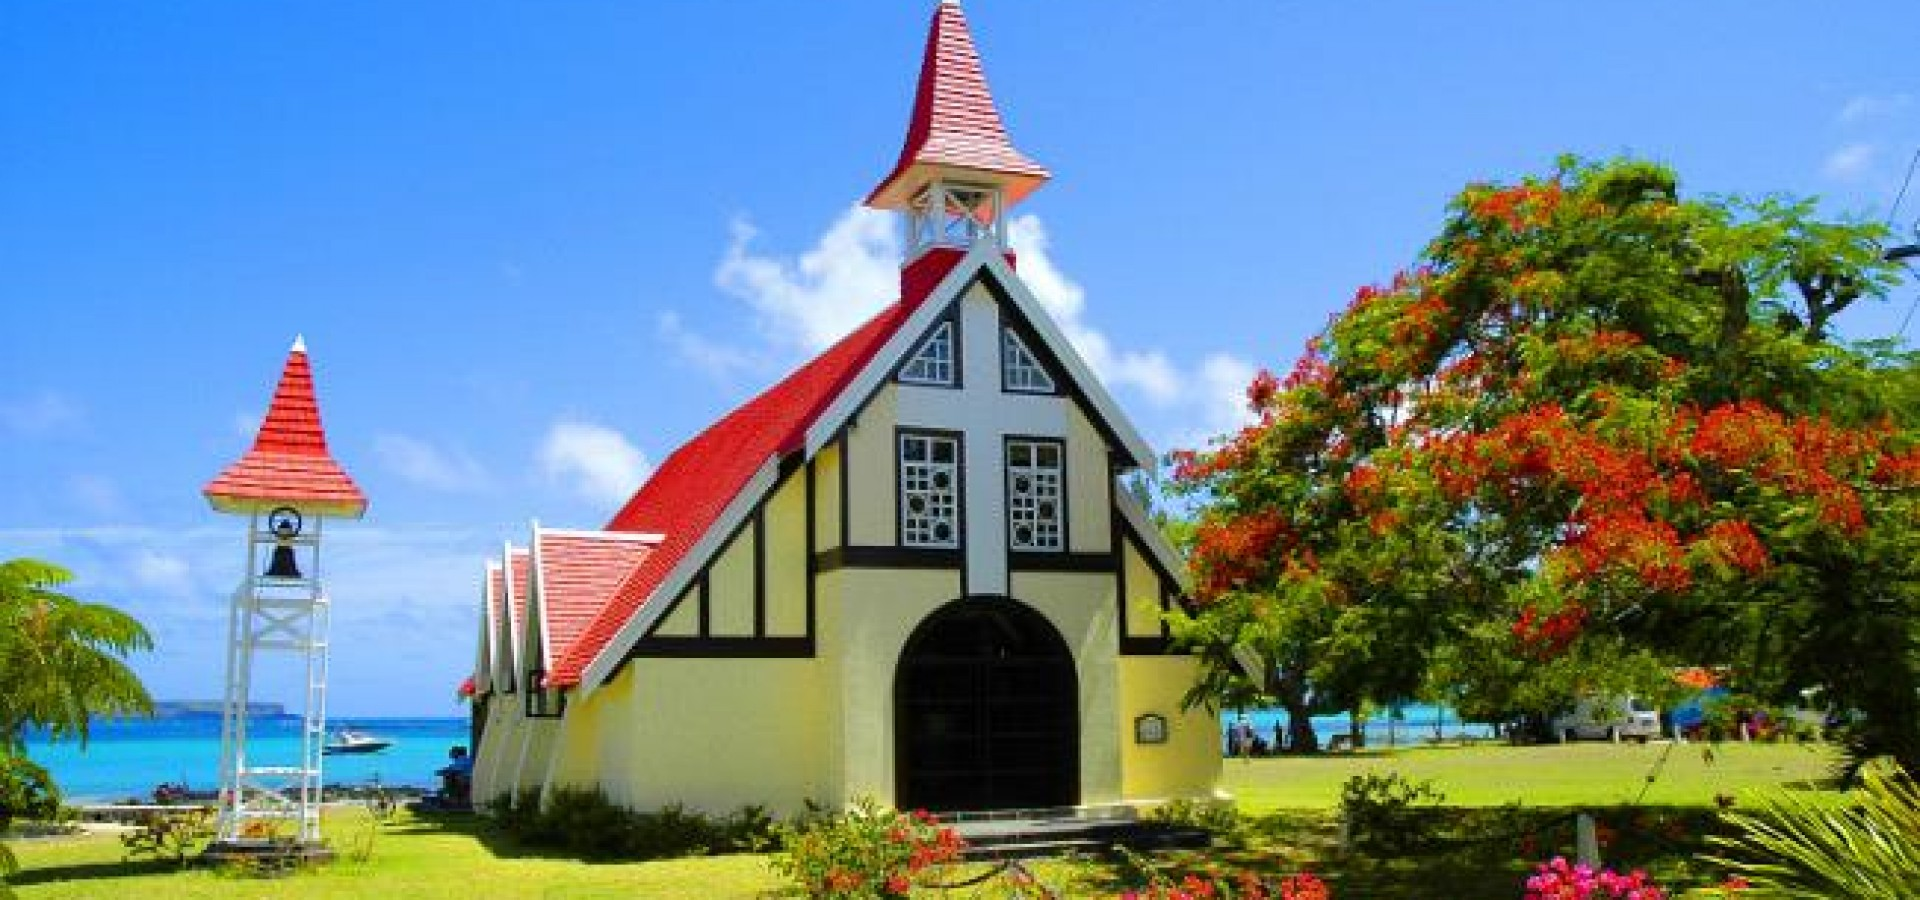 Red Roof Church Top Tourist